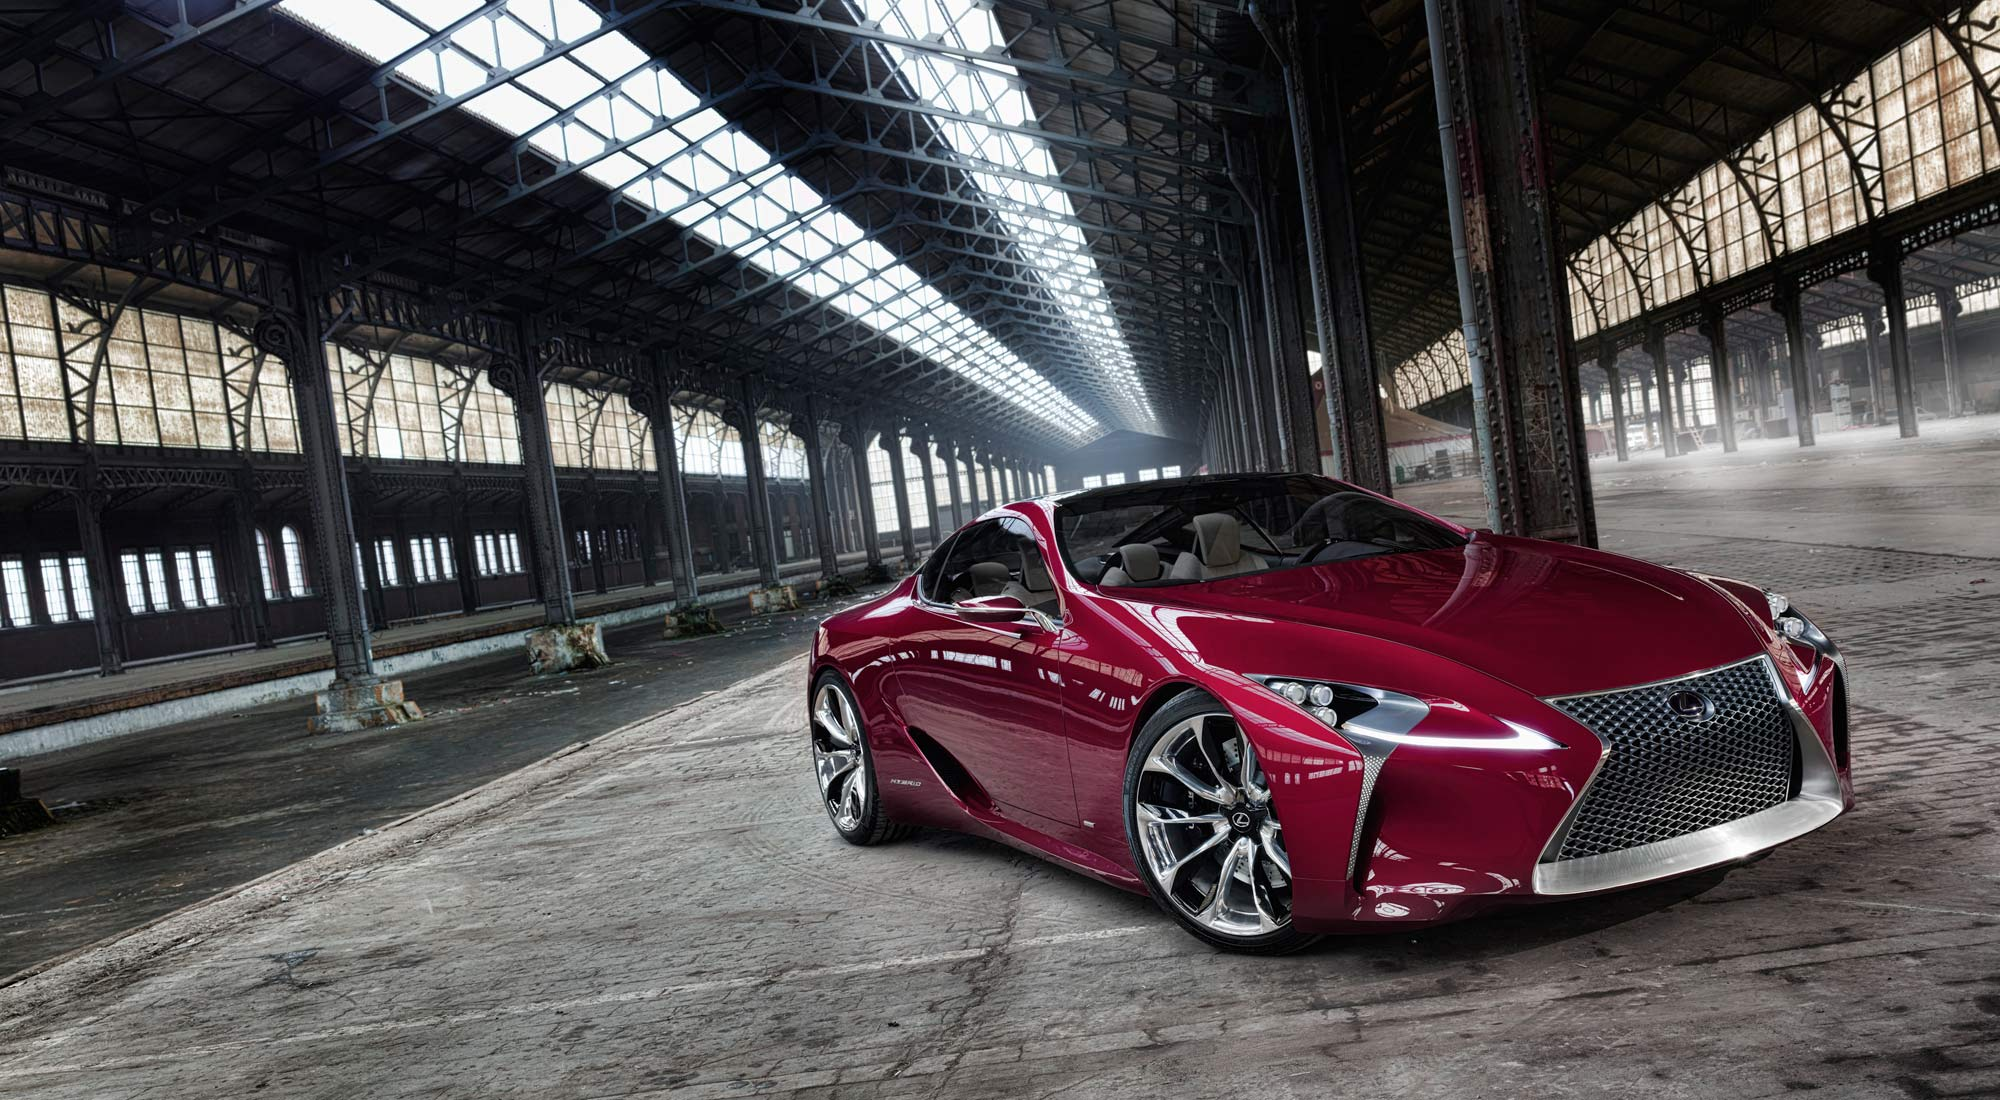 Toyota S Luxury Vehicle Division Lexus Has Introduced The Newest Concept Car Fc Lc Also Known As Fuel Cell